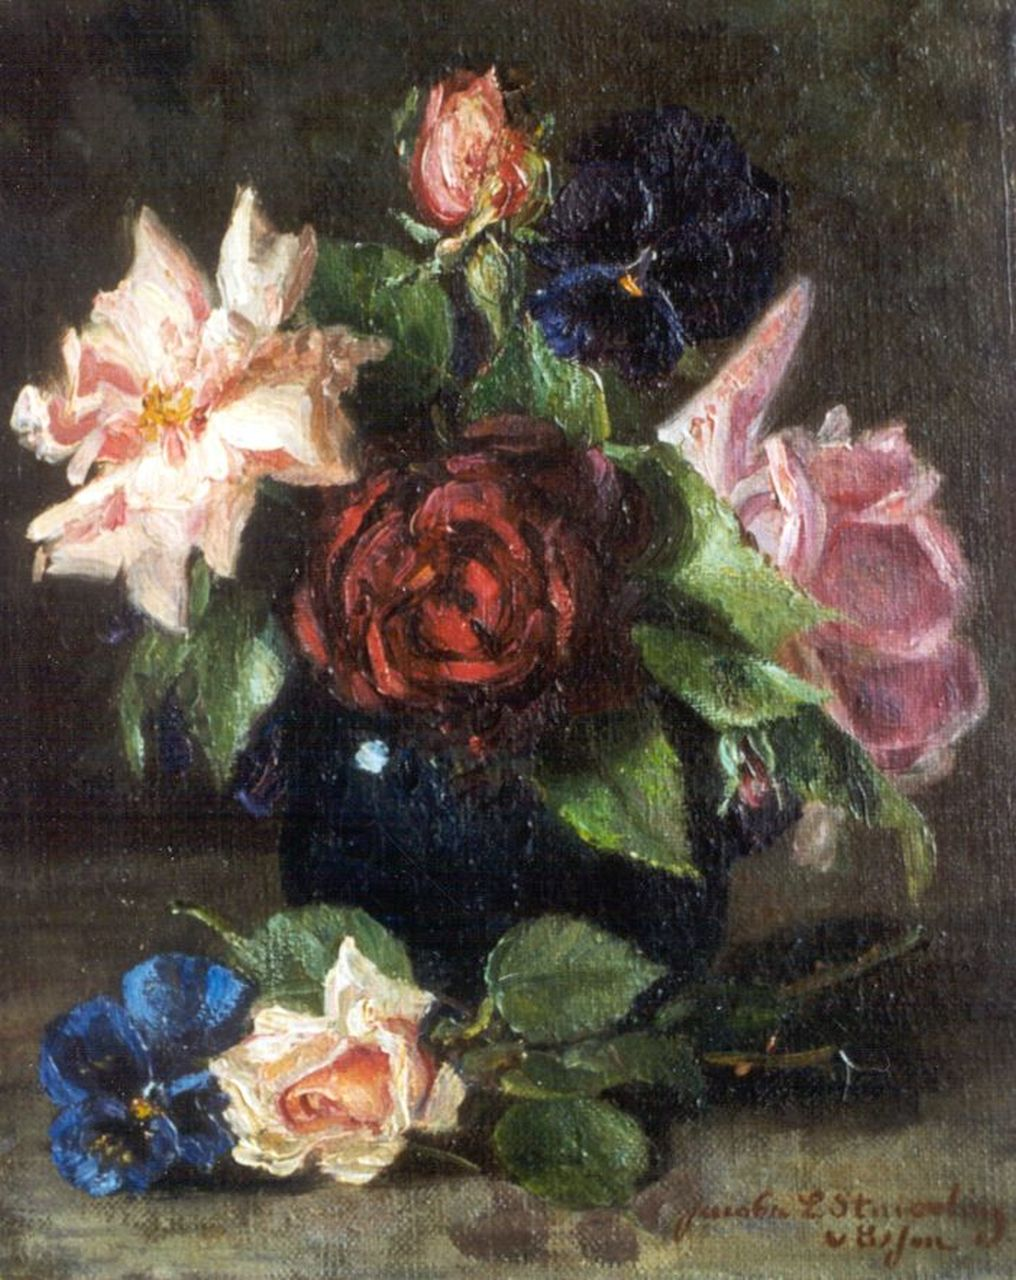 Jacoba L. van Essen | A still life with roses, oil on canvas, 25.2 x 20.2 cm, signed l.r.